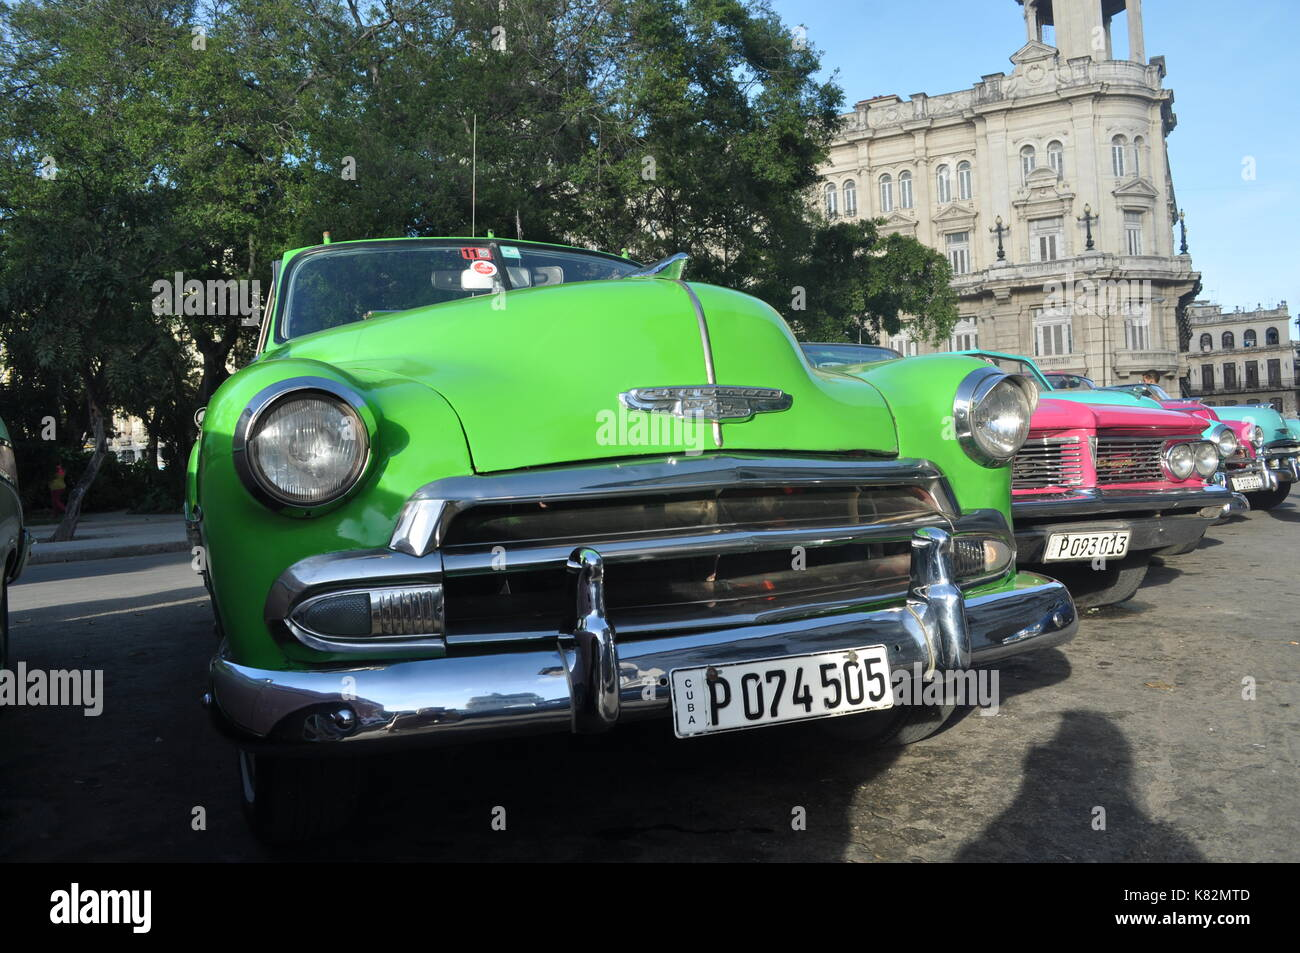 Vintage cars parked at old Havana square in Cuba - Stock Image